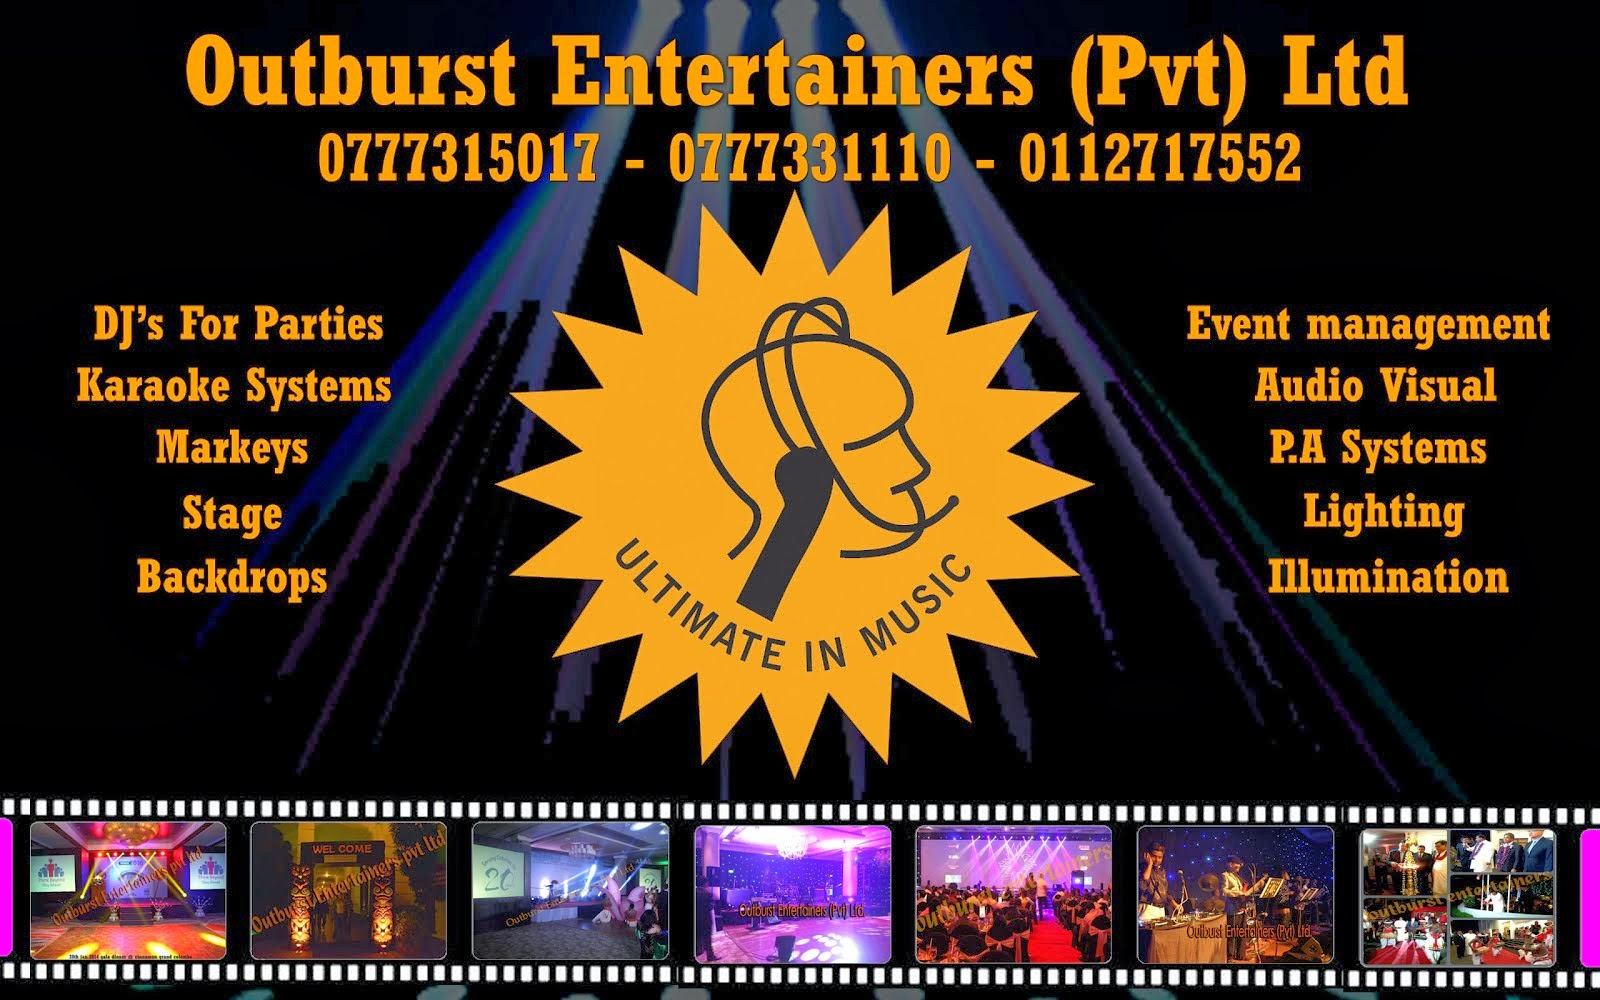 Outburst Entertainers (Pvt) Ltd.